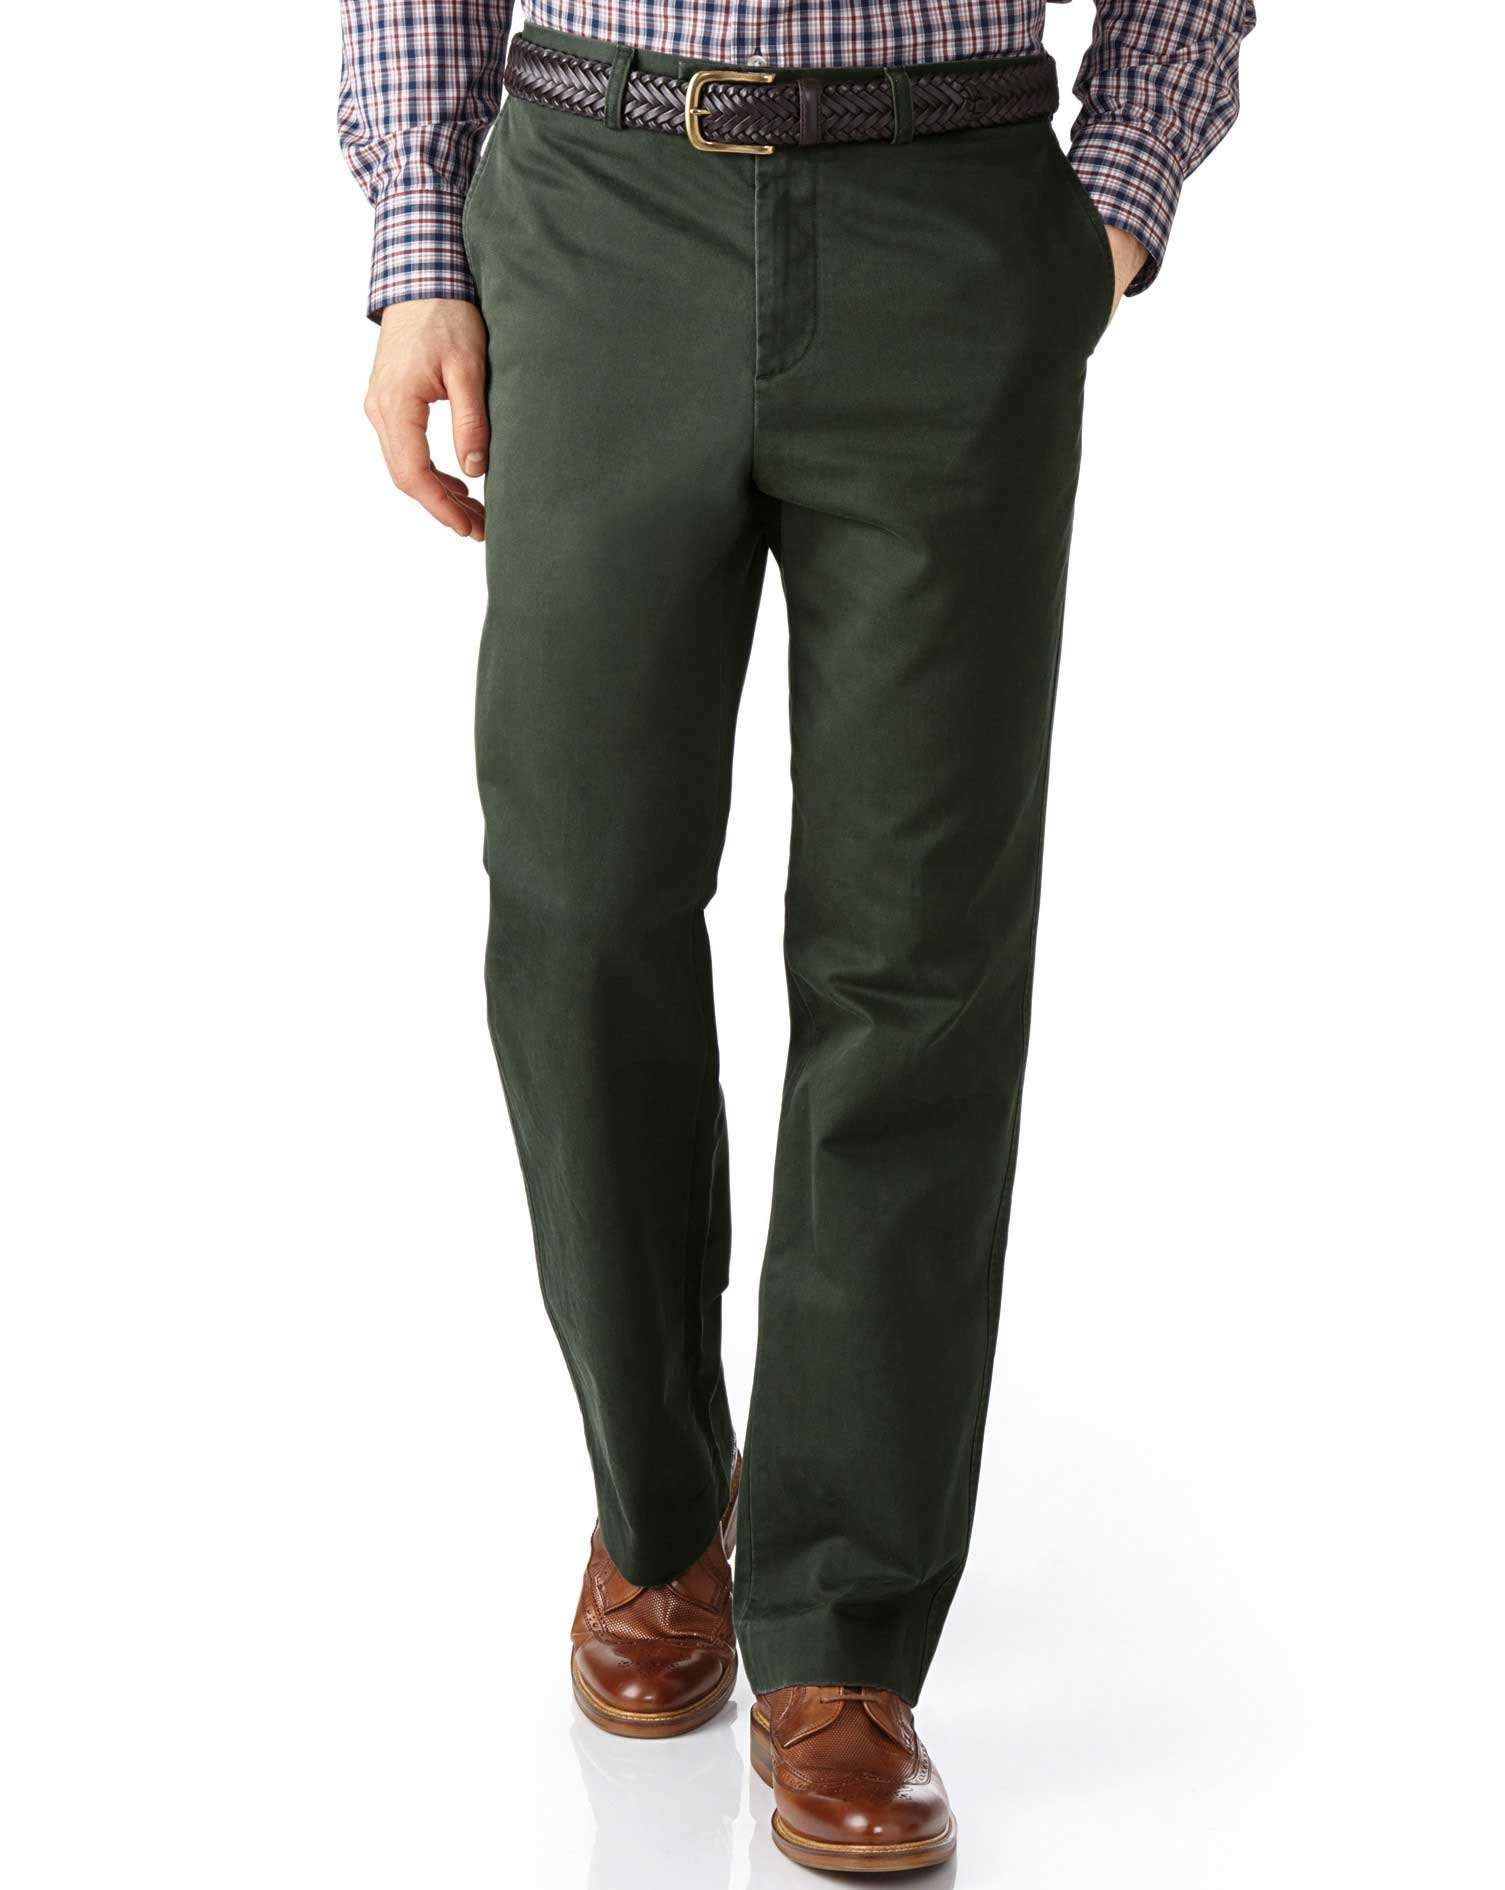 Dark Green Classic Fit Flat Front Weekend Cotton Chino Trousers Size W30 L38 by Charles Tyrwhitt